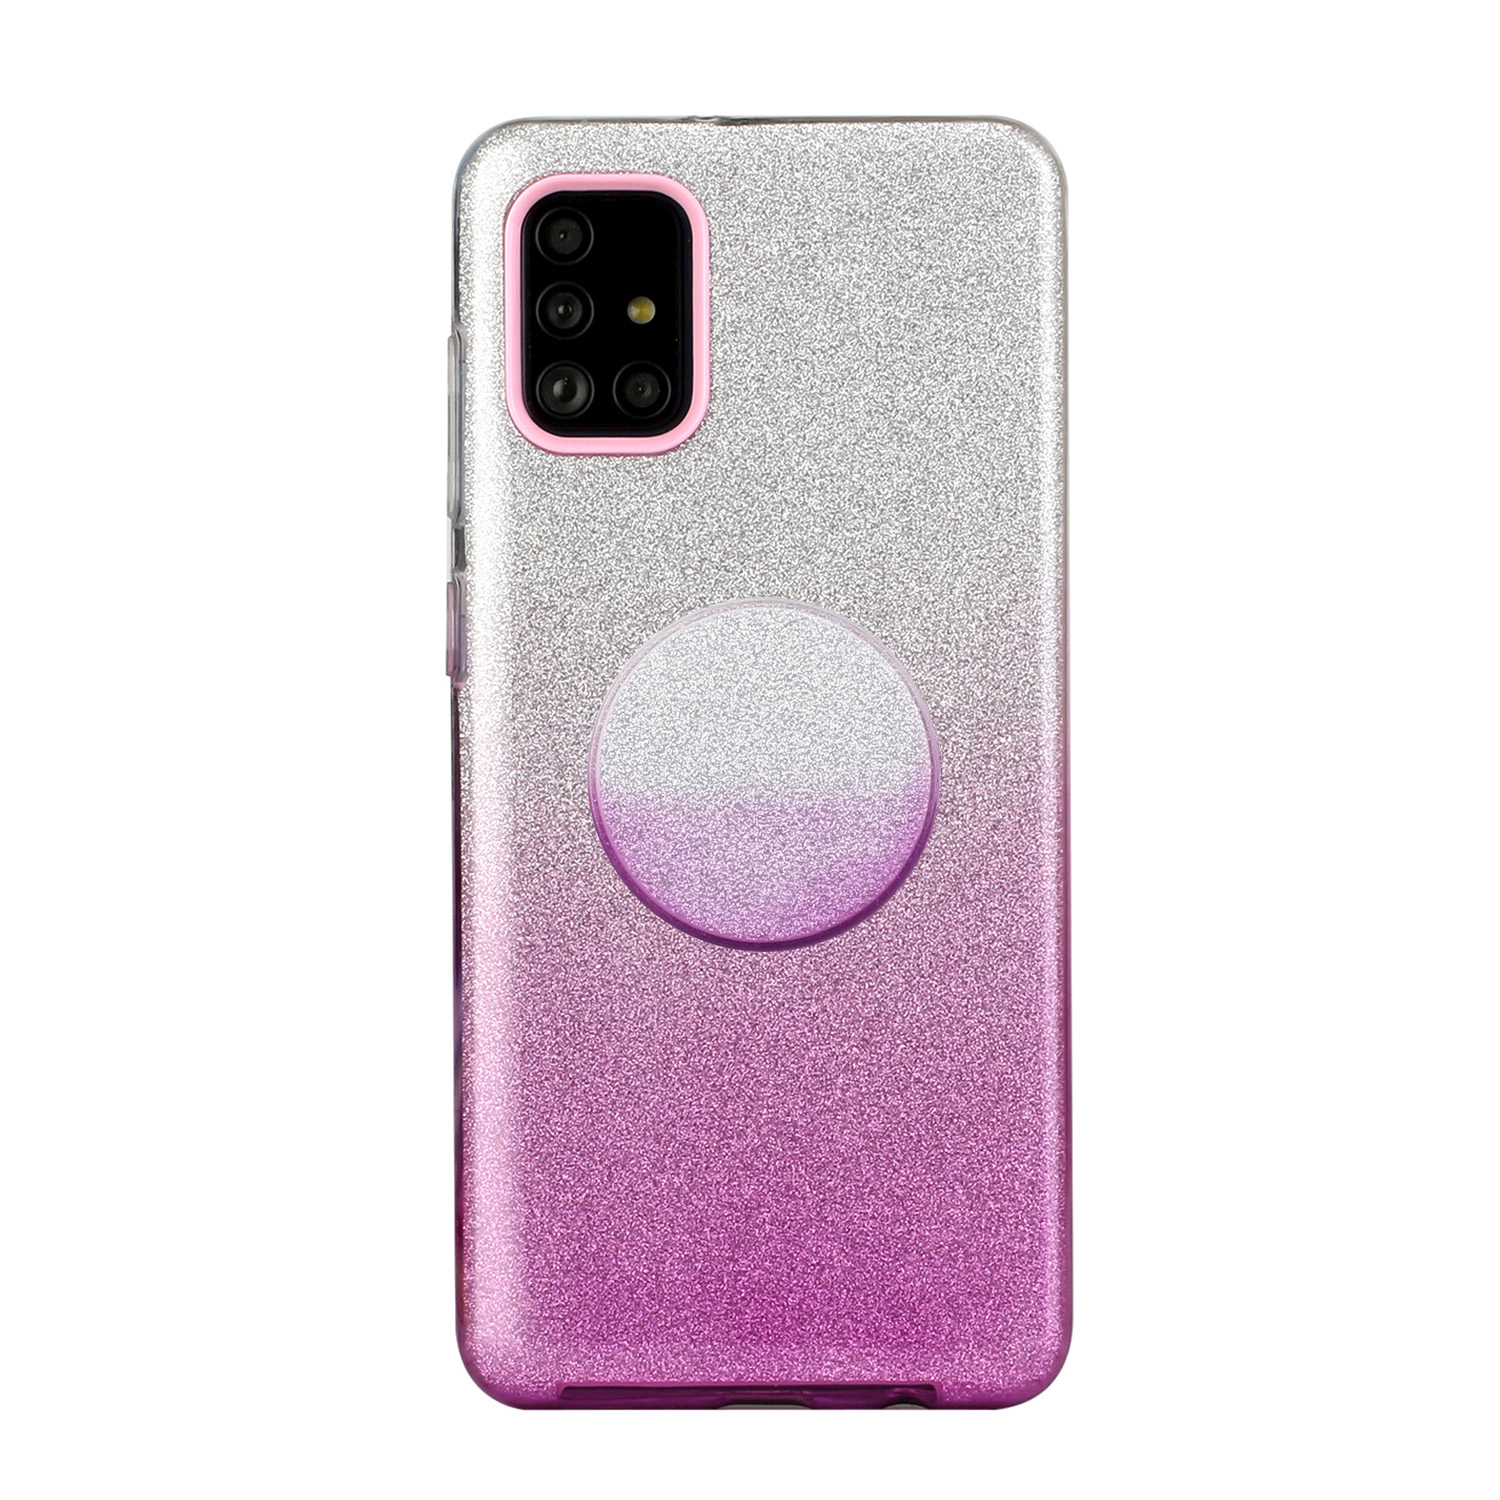 For OPPO Realme 5/Realme 5 Pro/A5 2020/A9 2020/A52/A92 Phone Case Gradient Color Glitter Powder Phone Cover with Airbag Bracket purple